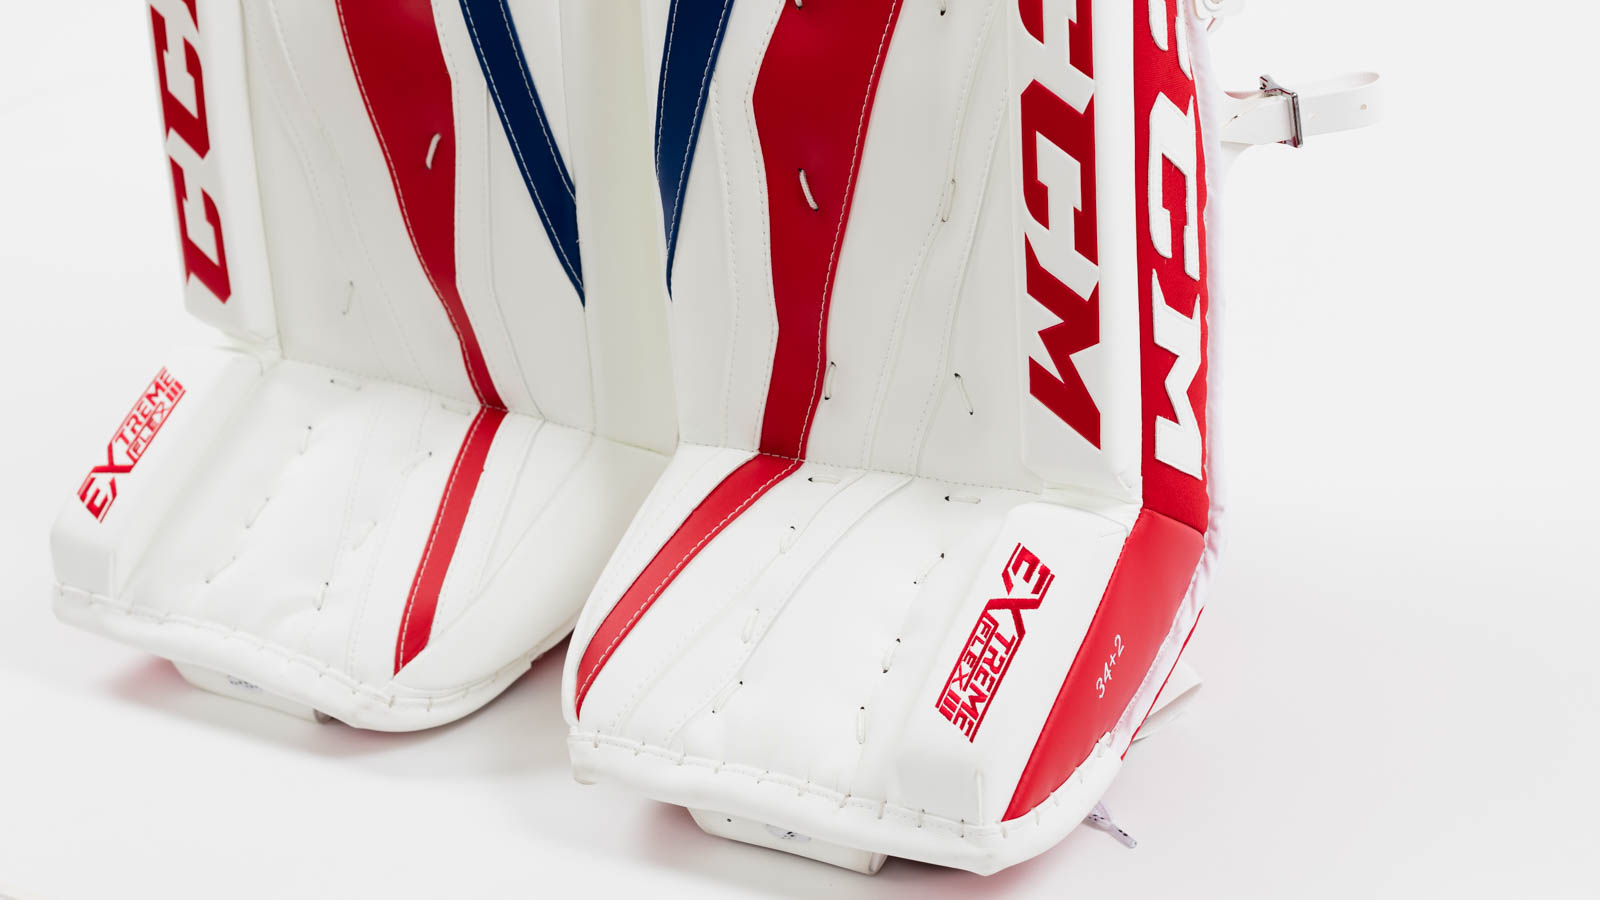 Bauer 1S Goalie Pads - Staff Reviews - THE GOAL[ie] NET[work]